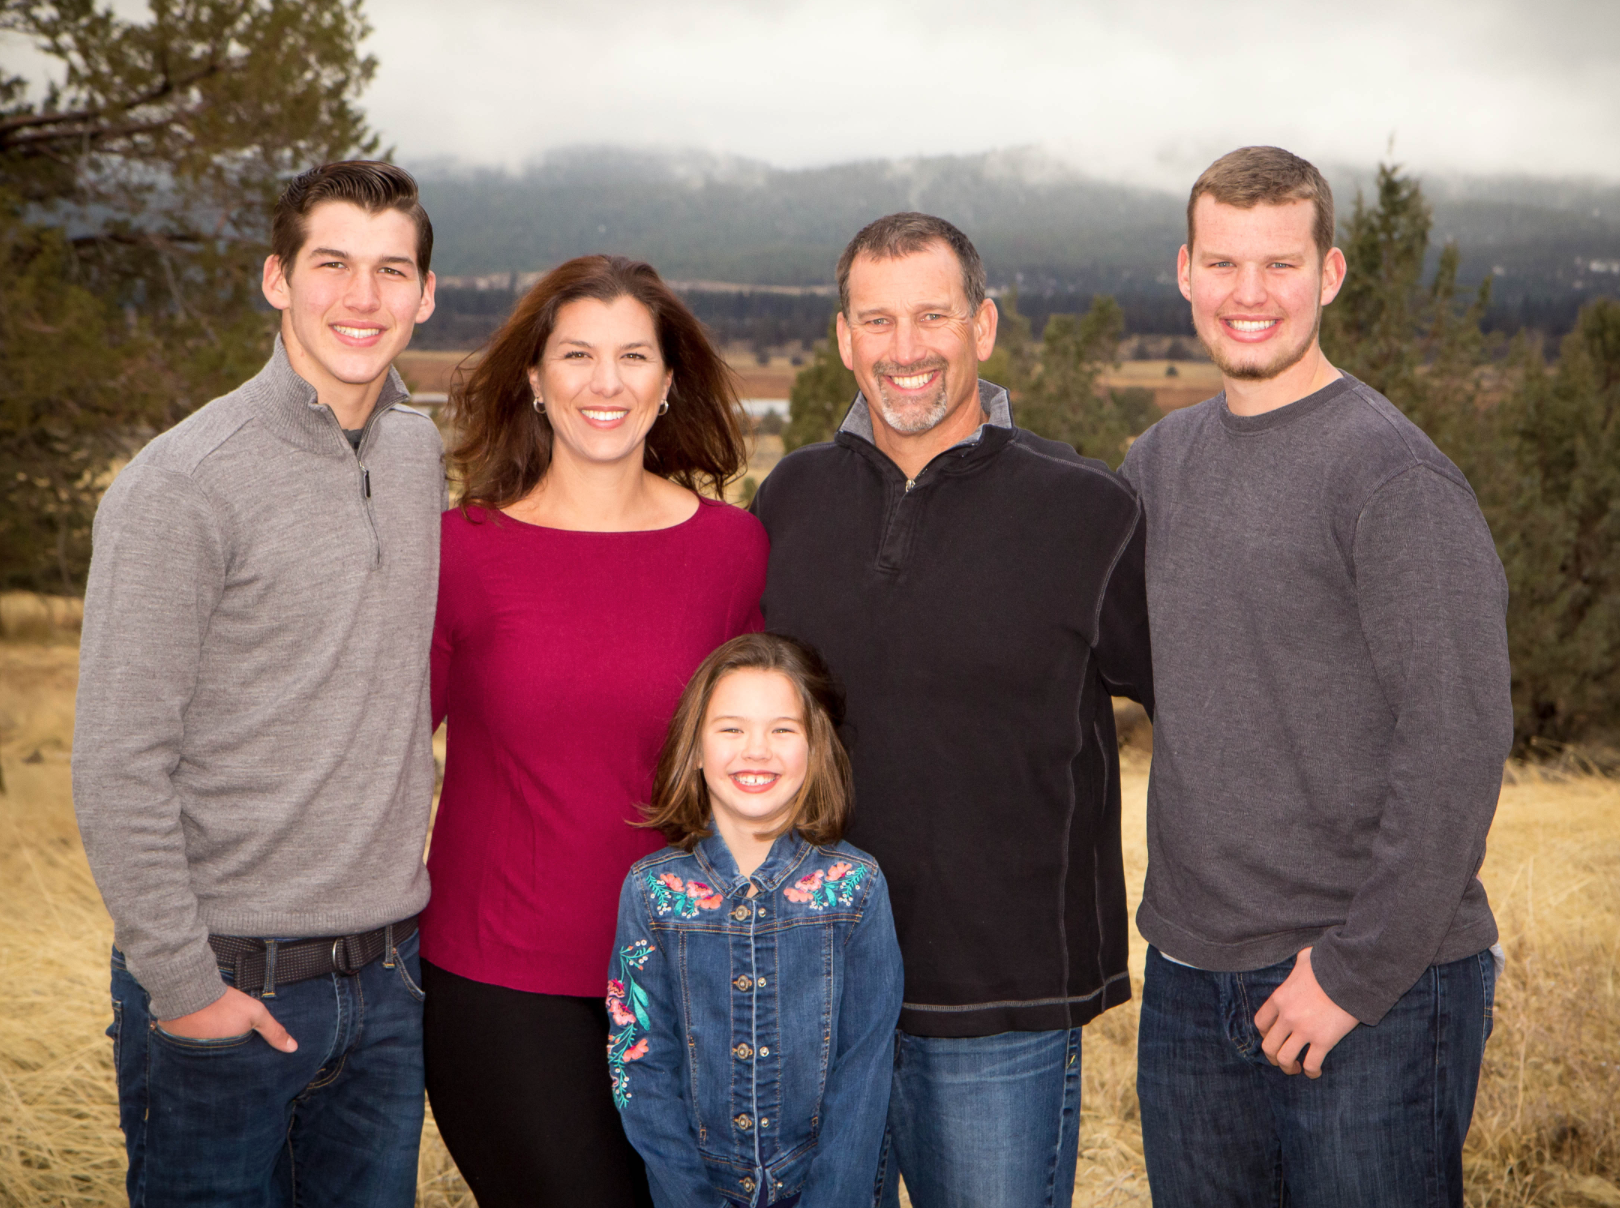 brian_family_photo.png